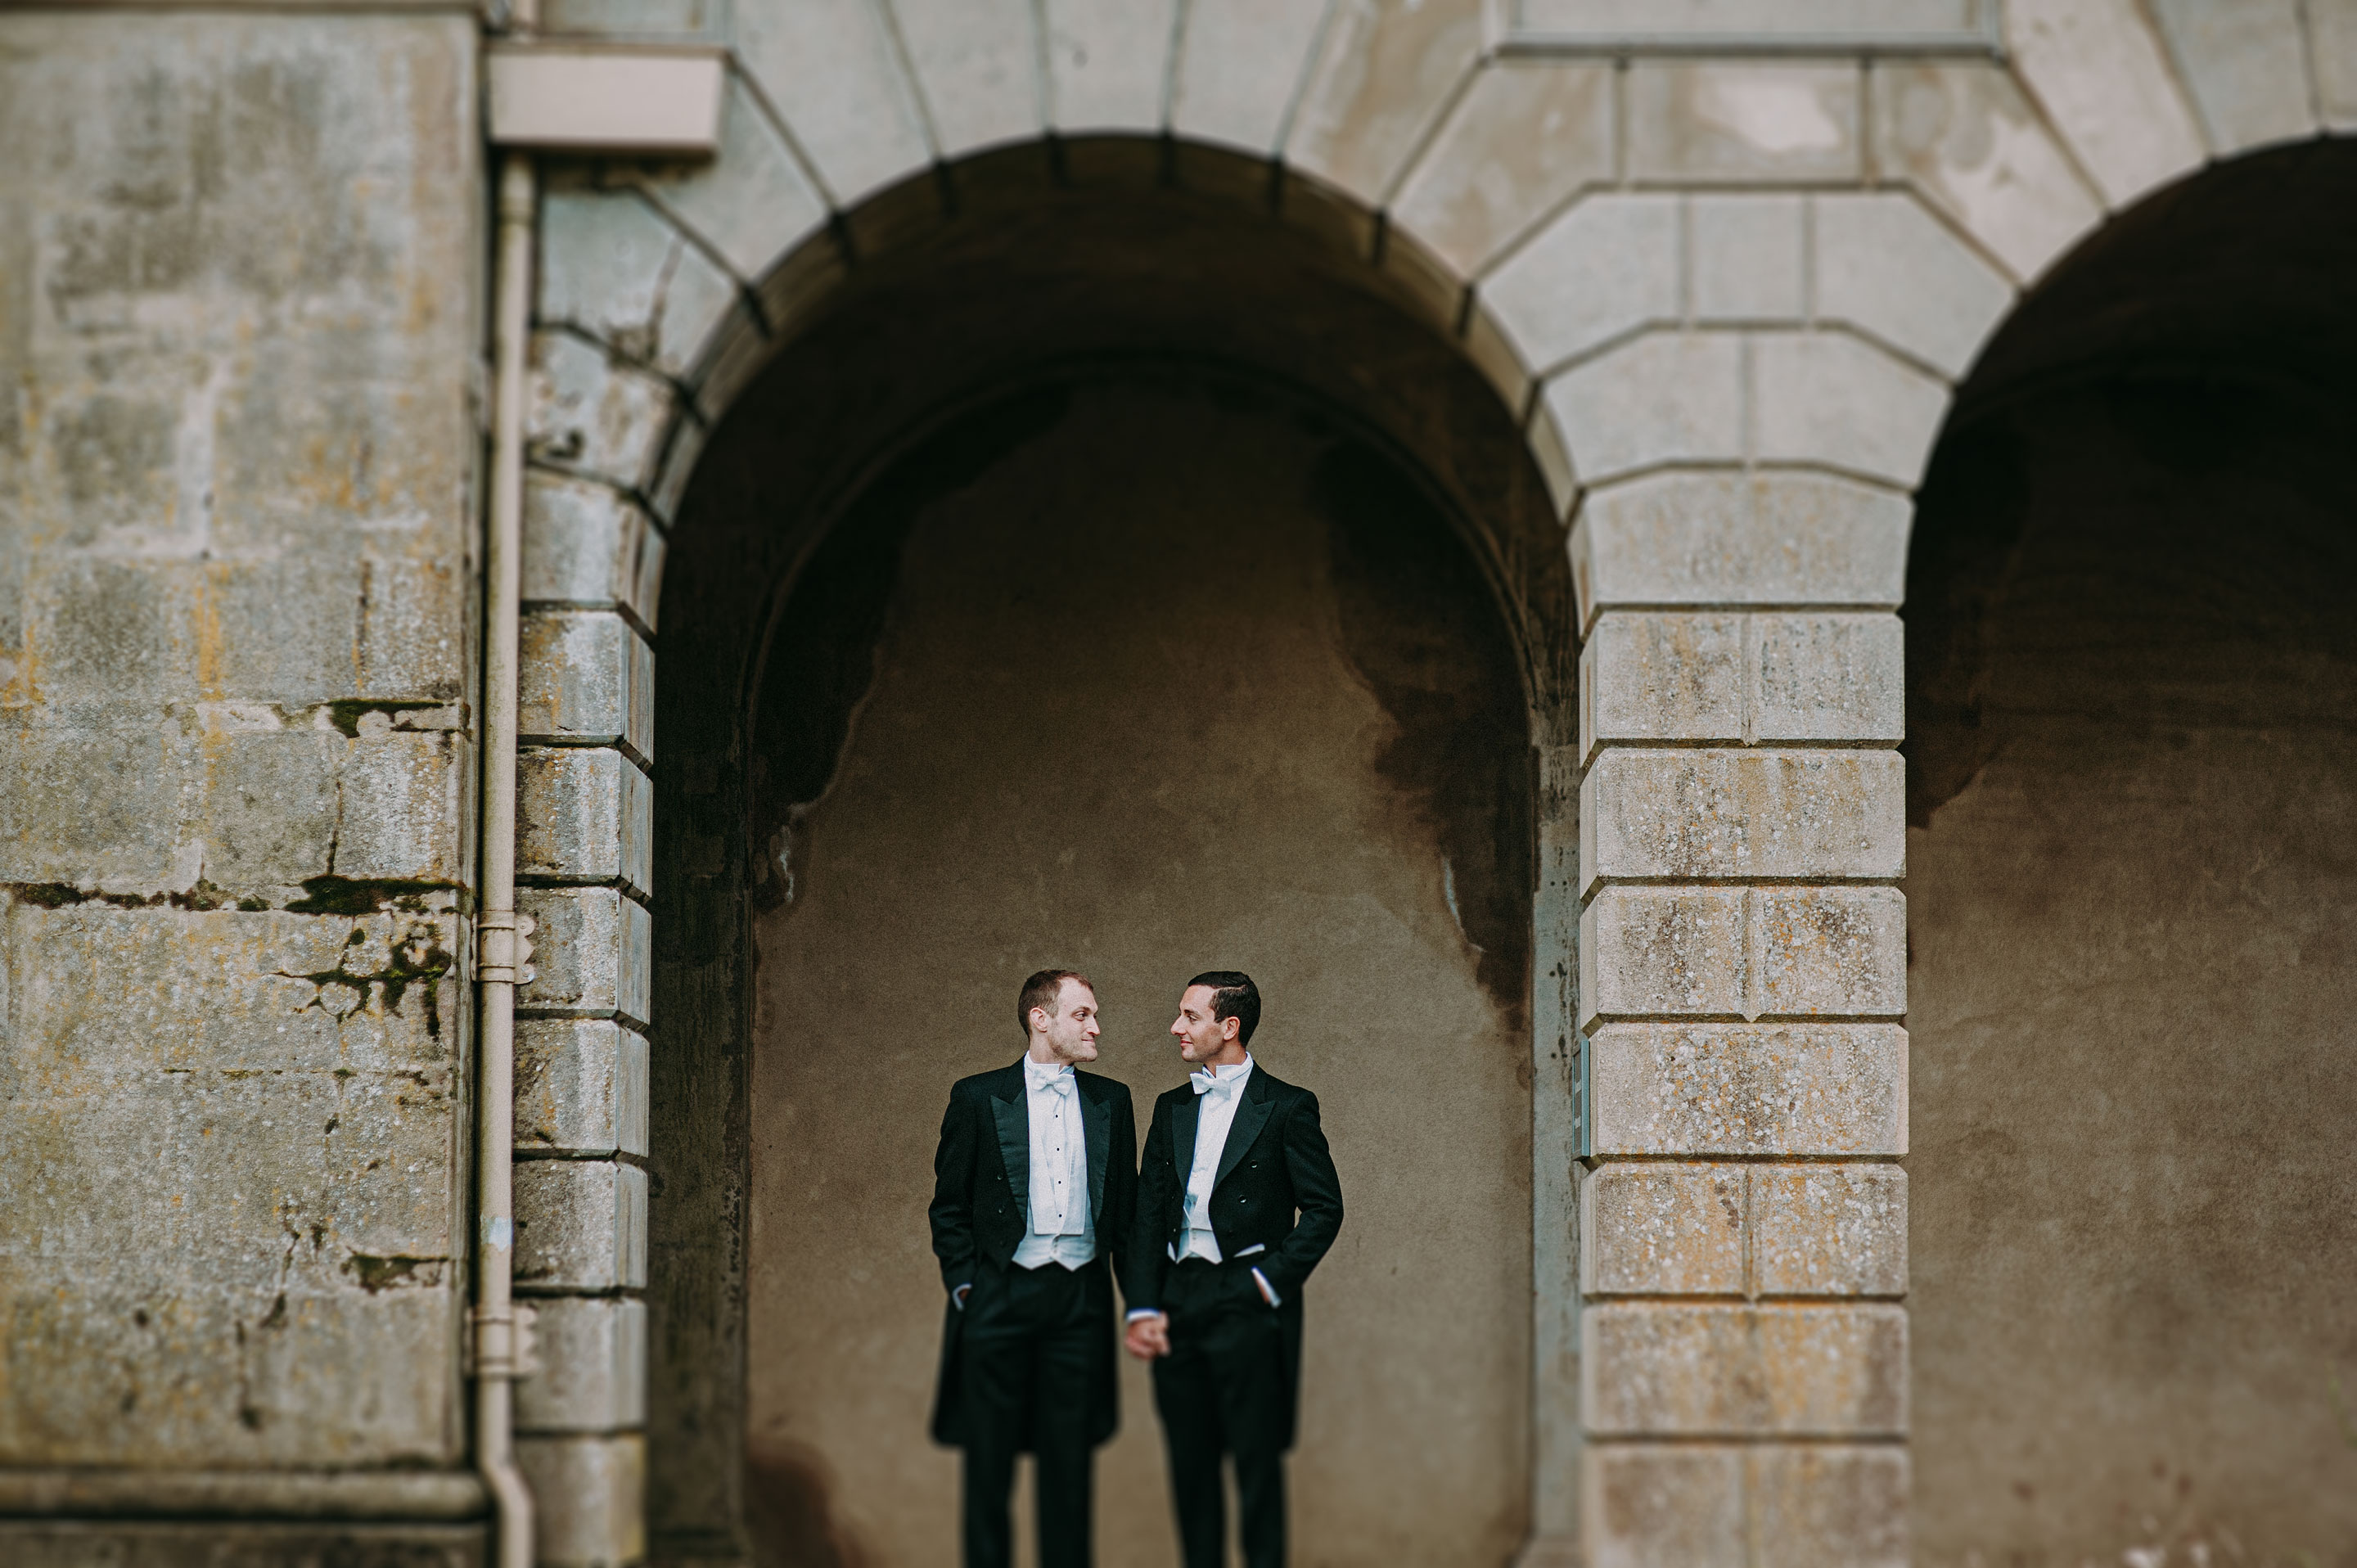 Patrick and Danny at Cliveden House. for their same sex wedding